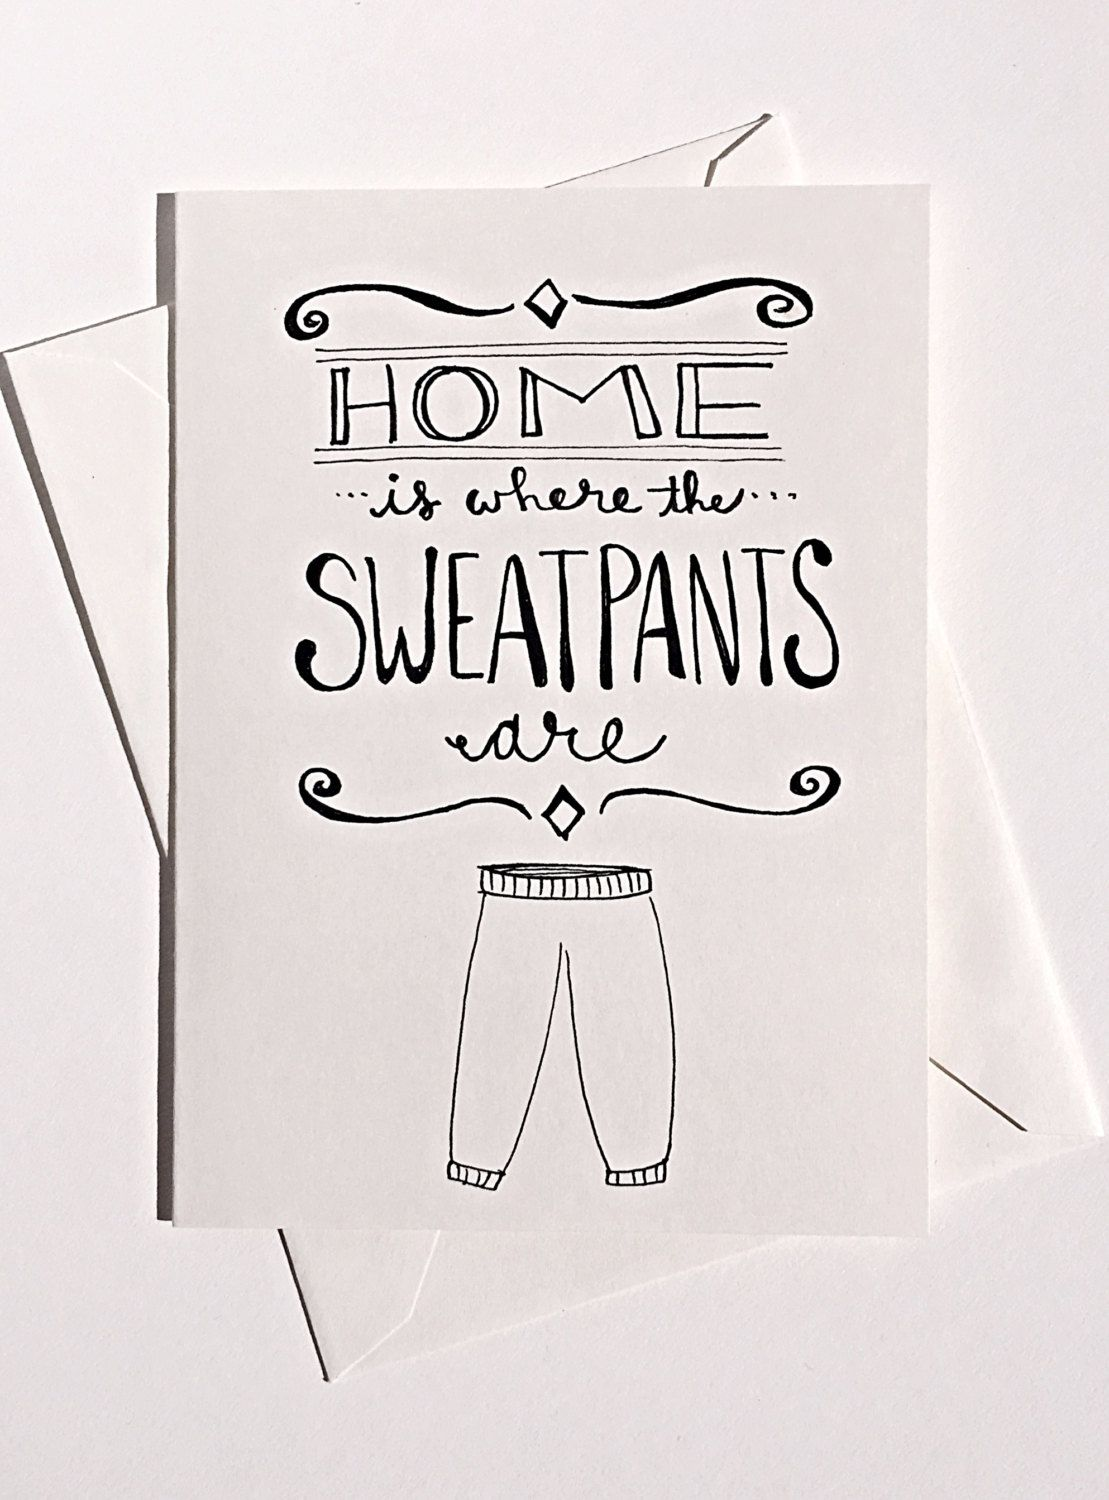 Greeting Card - Home is Where the Sweatpants Are by CLAIREandJAMESdesign on Etsy